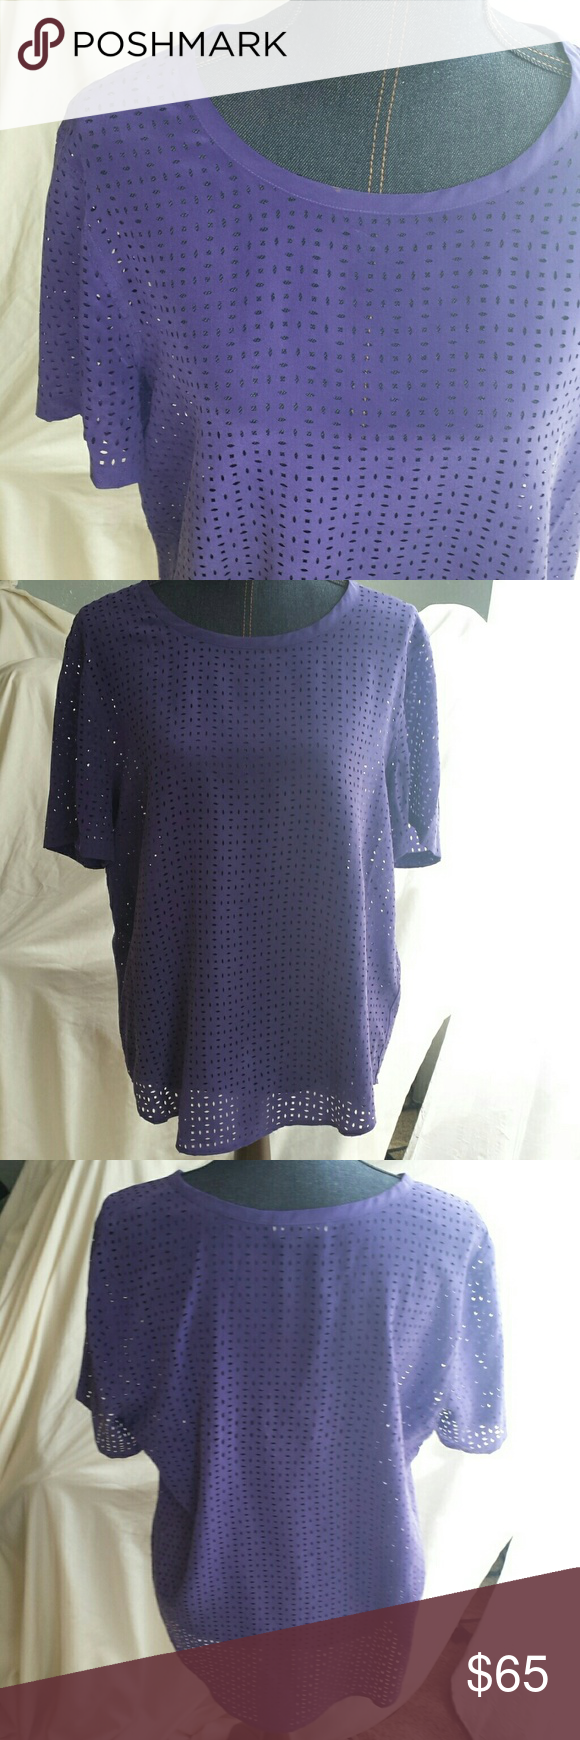 Intricately cut silk tunic 100% silk top with lots of laser cut openings. Wear a bright color underneath to pop the pattern or dark to be subtle.  Looks great tucked in as well Equipment  Tops Tunics